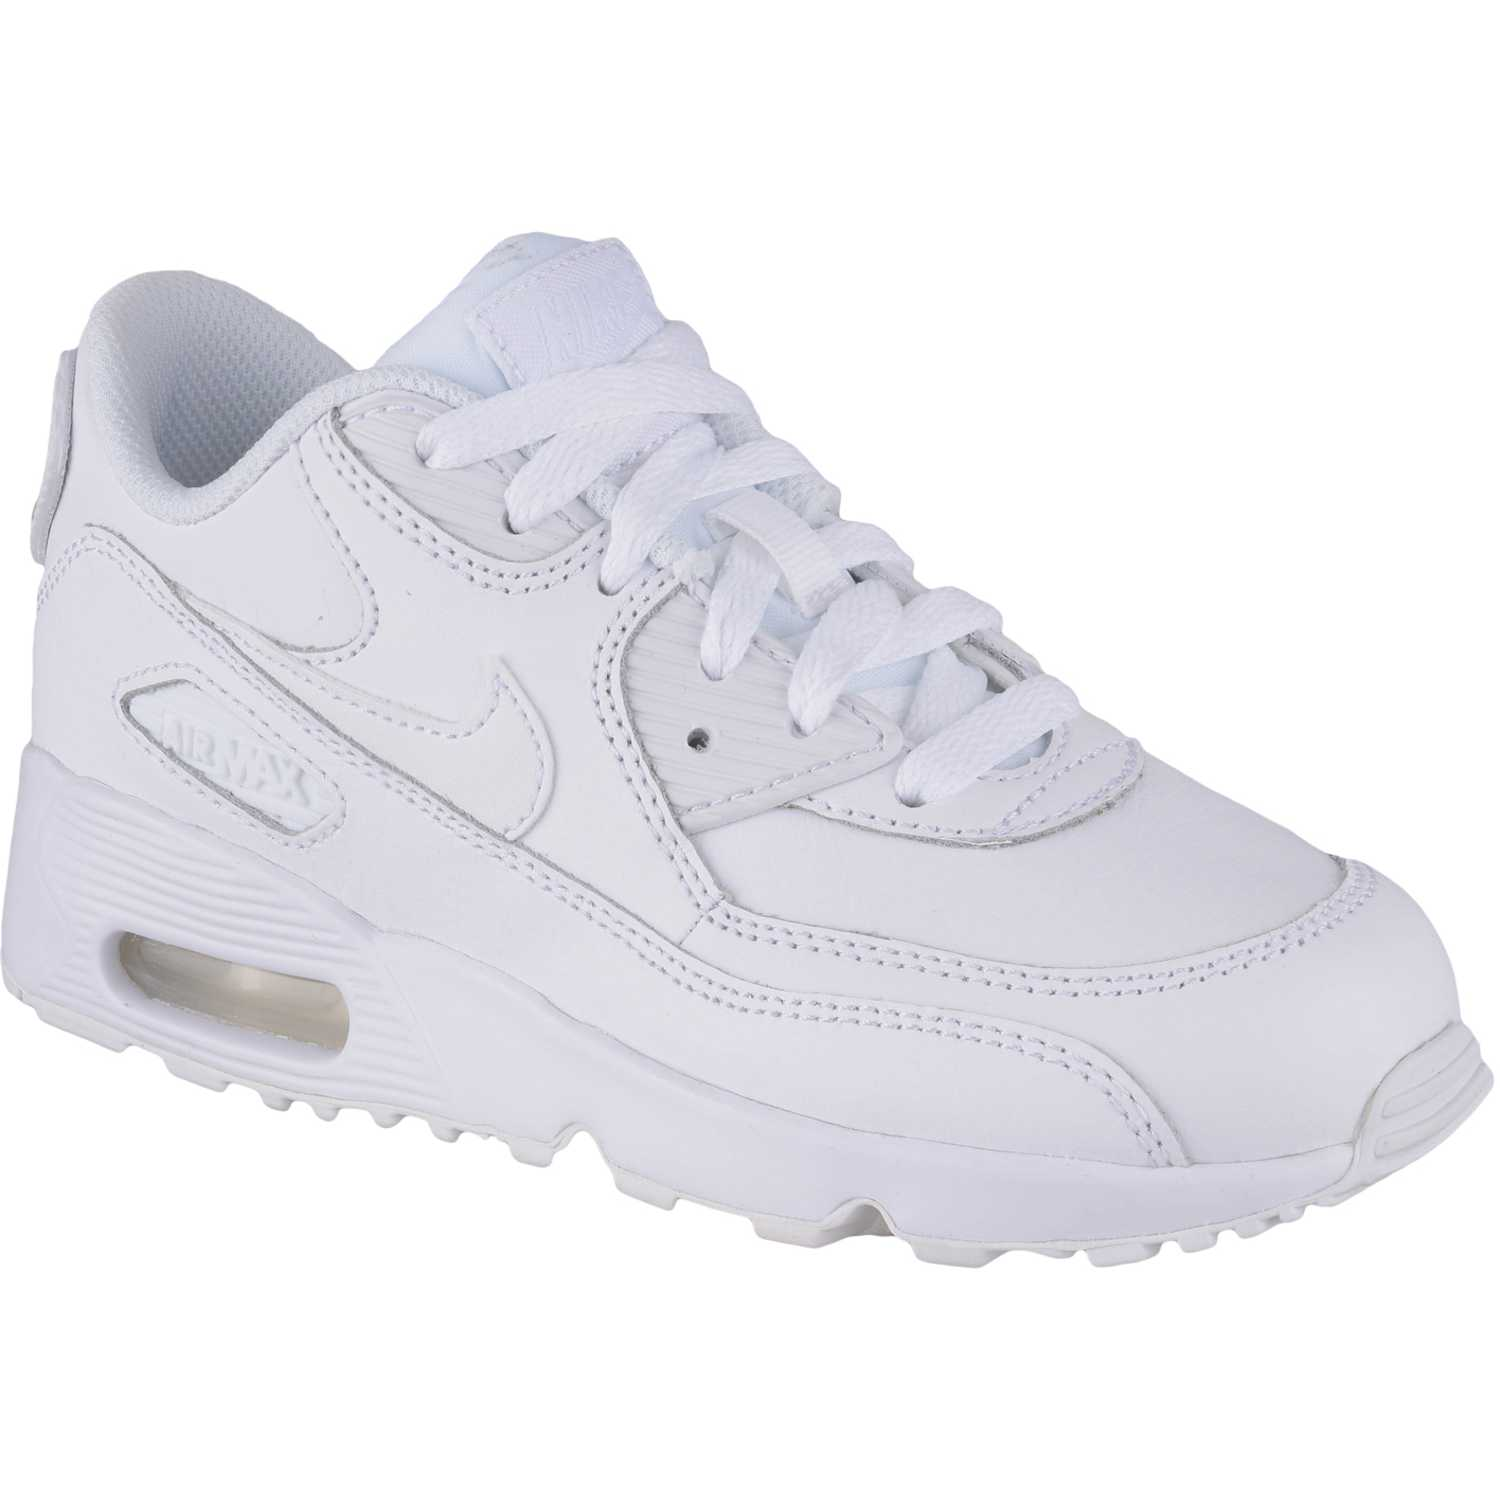 Rectángulo toque Prosperar  Nike air max 90 ltr bp Blanco Walking | platanitos.com